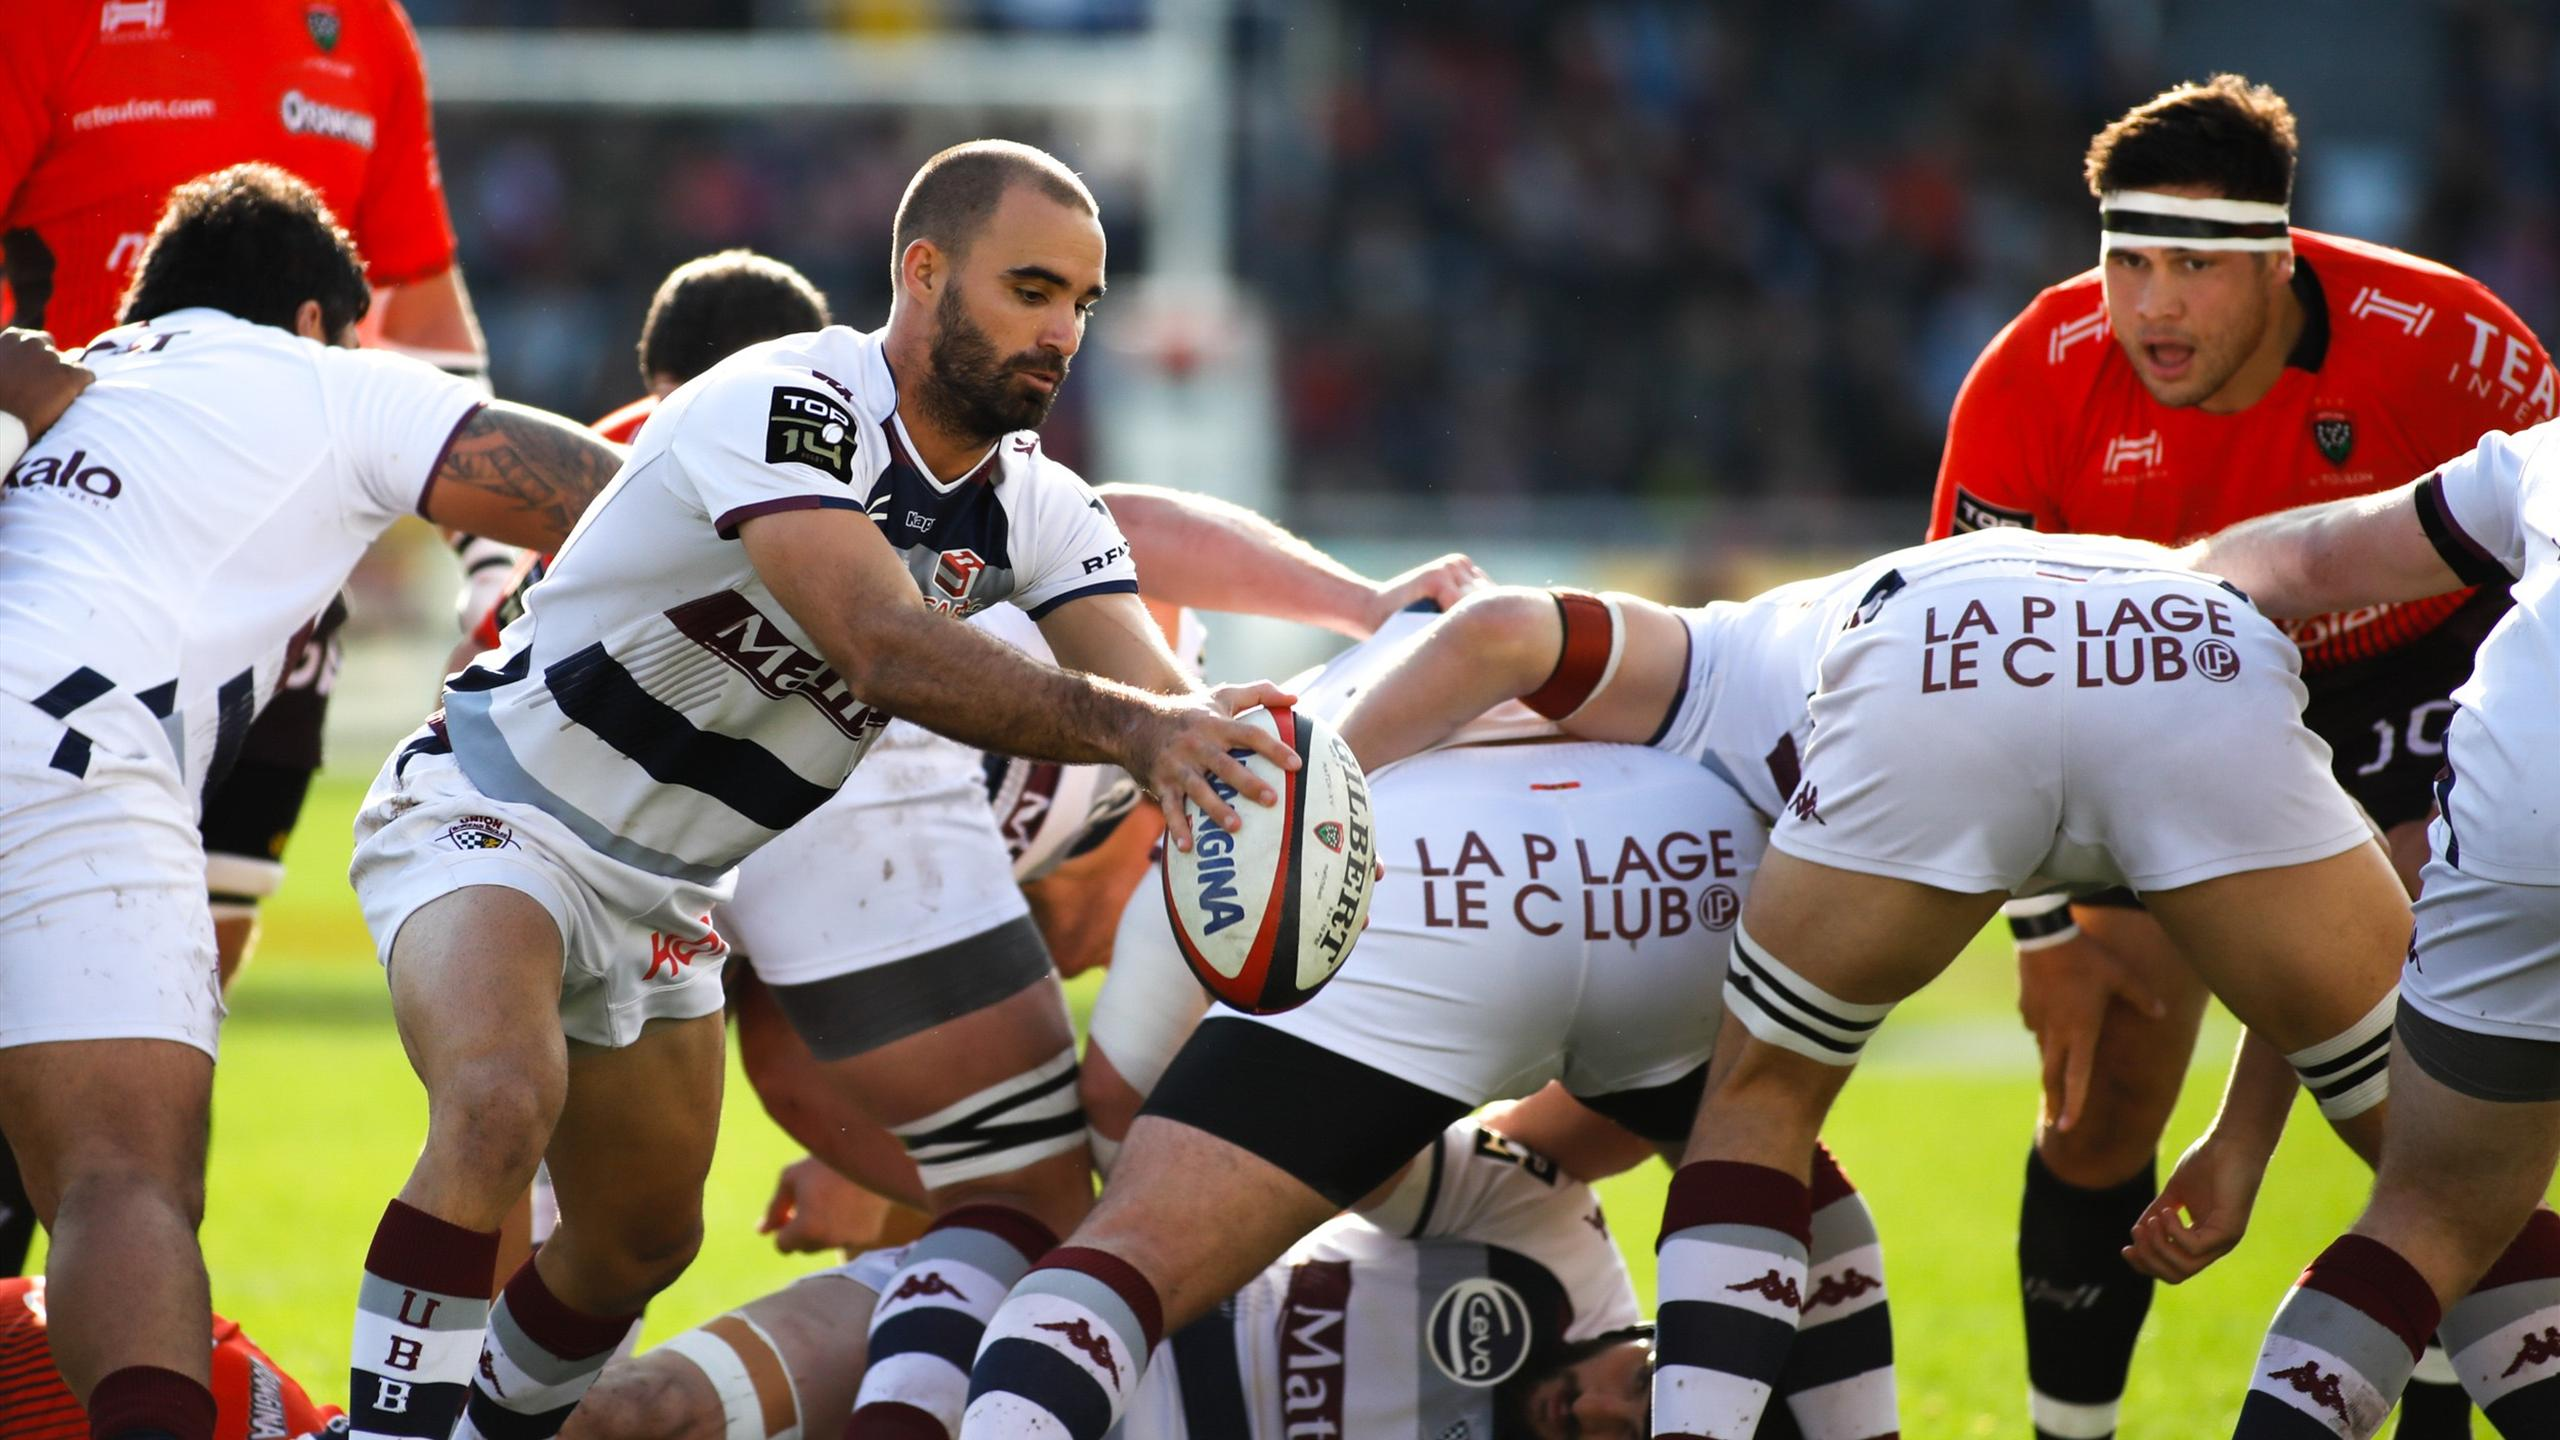 photo drole rugby